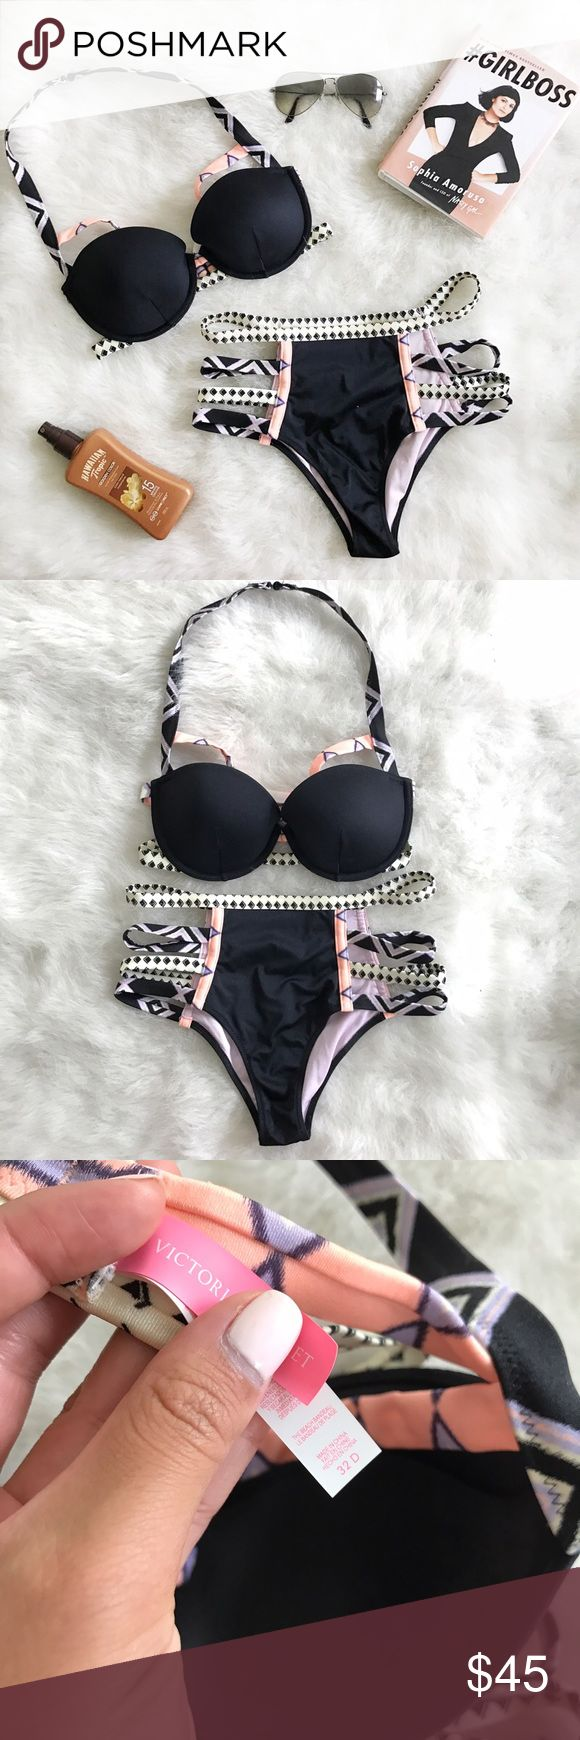 "Victoria Secret Aztec High Waist Bikini Set🖤👙 Victoria Secret Aztec High Waist Bikini Set🖤👙 Size: Top 32D Bottom ""S"" Condition: Used (worn once)  The perfect summer bikini, worn once to  Cancun Mexico, very flattering and tropical. Has no panty stains, bra does not have push up and hooks from top and back. In EUC no stains and no flaws.  This is a rare piece from 2015 collection. Have multiple bikinis need more space. No low balls top alone was $75 😄💕   In Bin: PS  **All items from my…"